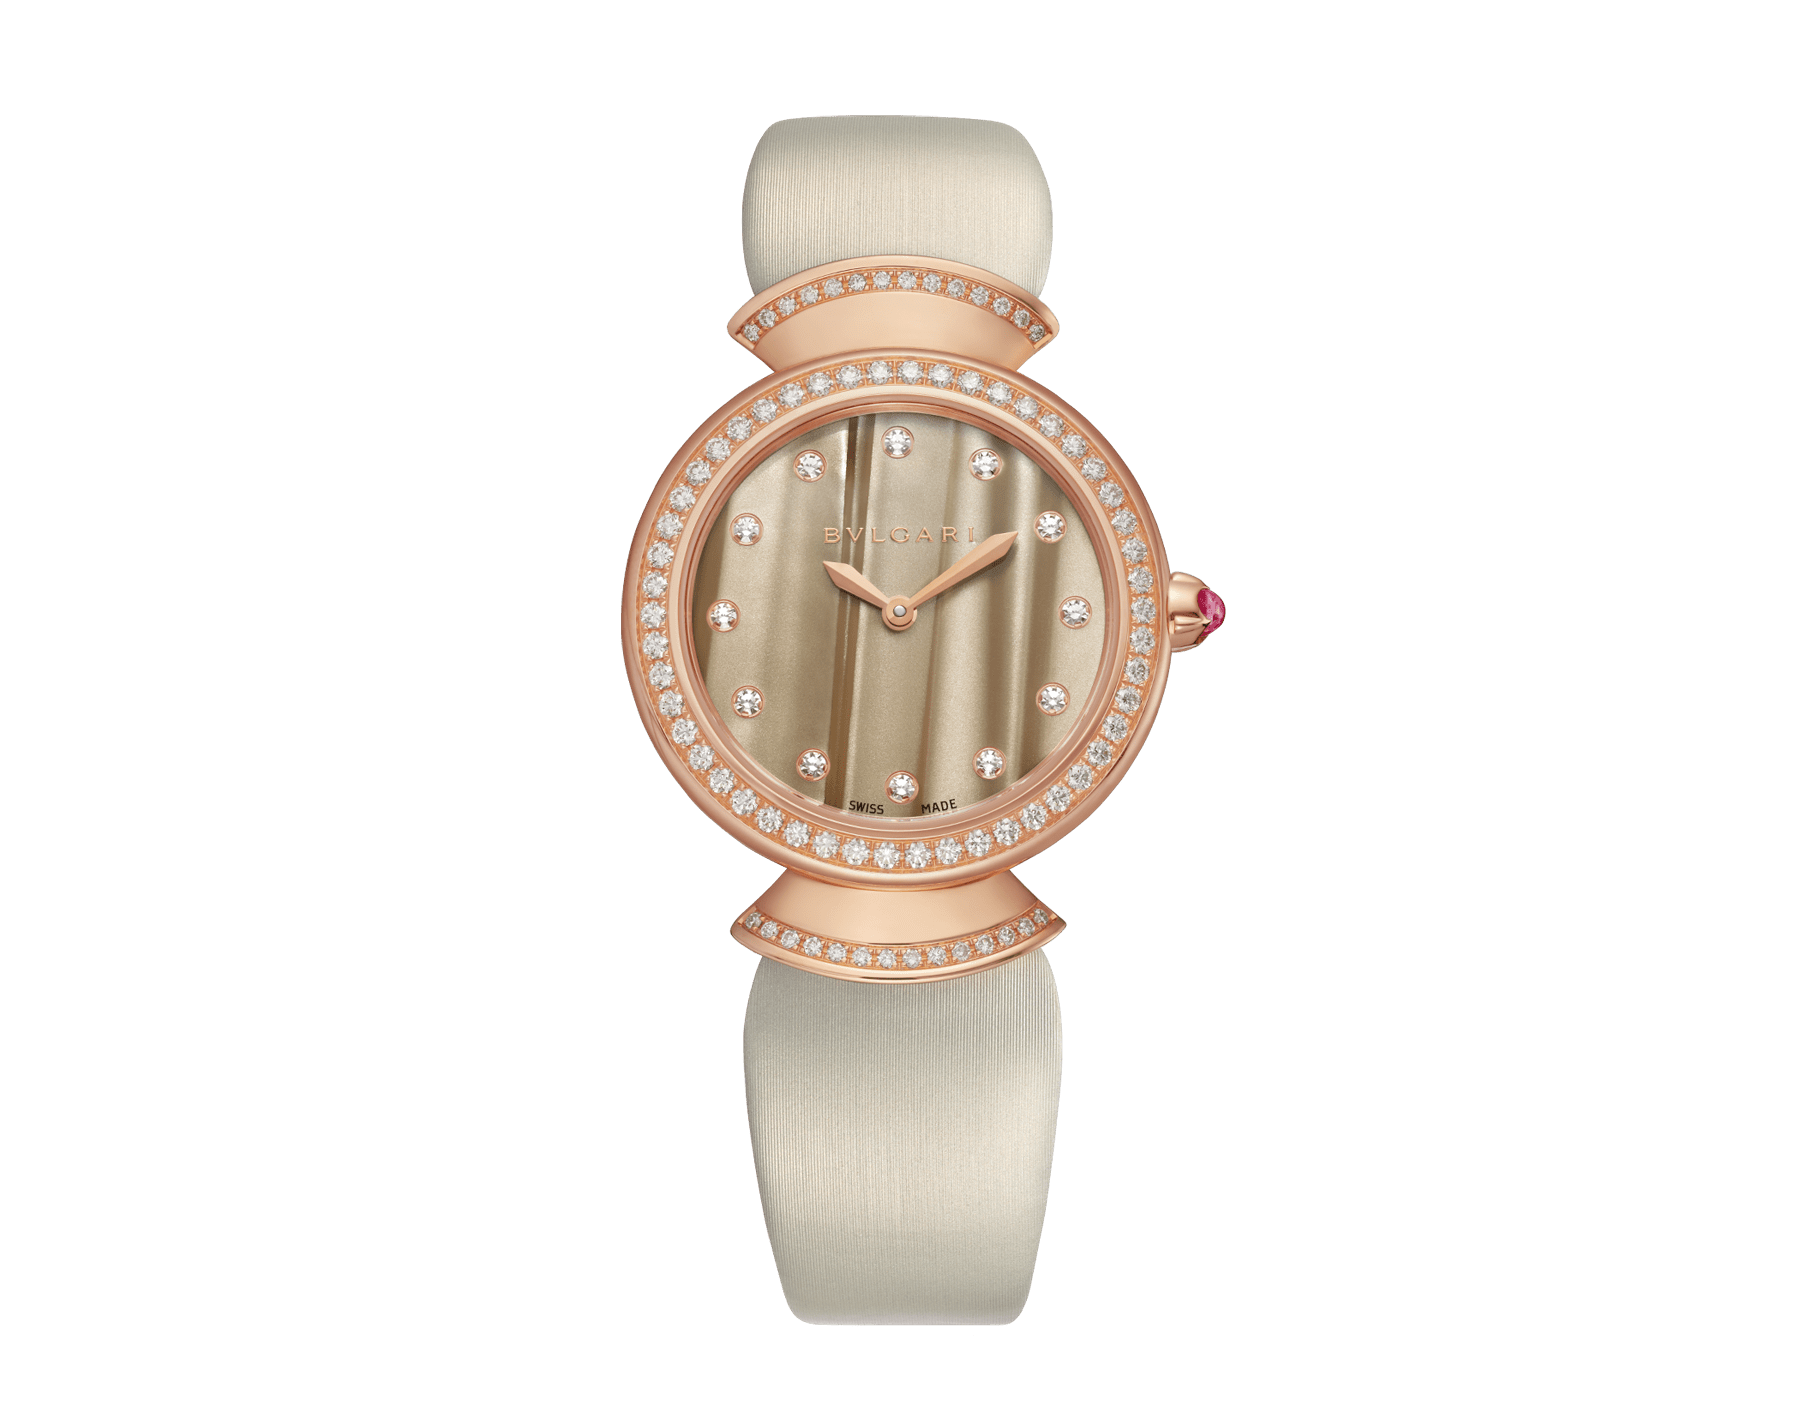 DIVAS' DREAM watch with 18 kt rose gold case set with brilliant-cut diamonds, natural acetate dial, diamond indexes and bronze satin bracelet 102435 image 1